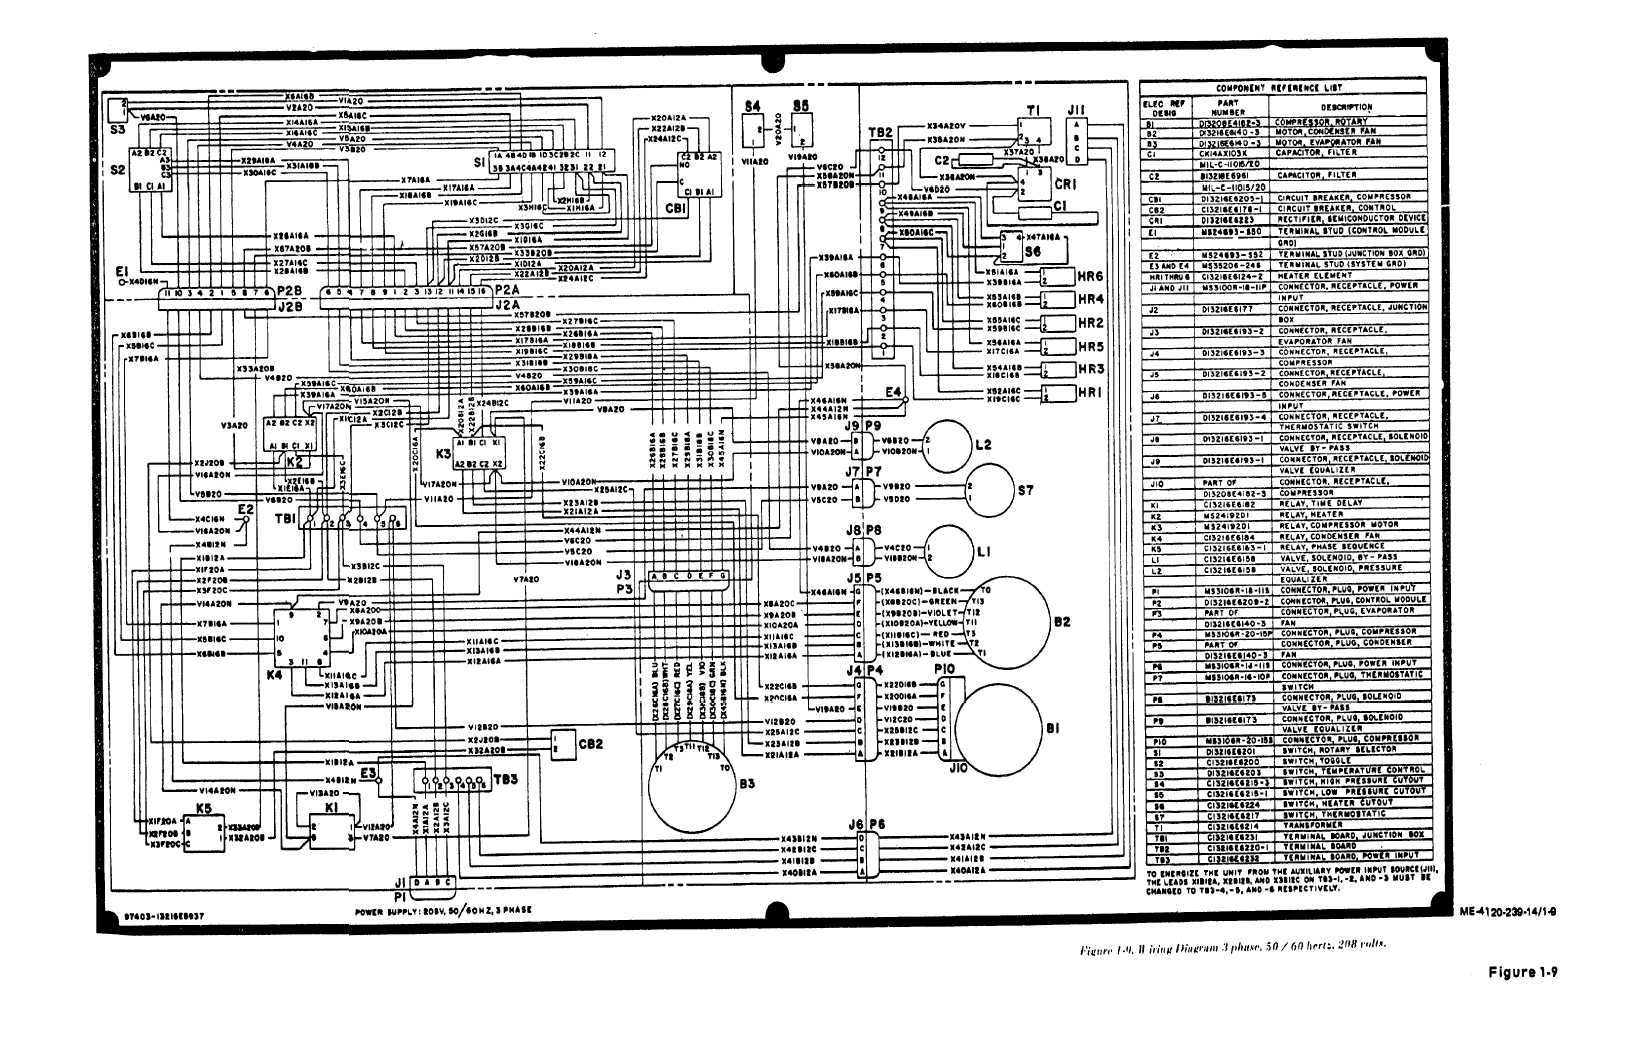 208 Single Phase Distribution Wiring Diagram Library Wye Figure 1 9 3 50 60 Hertz Volts Volt